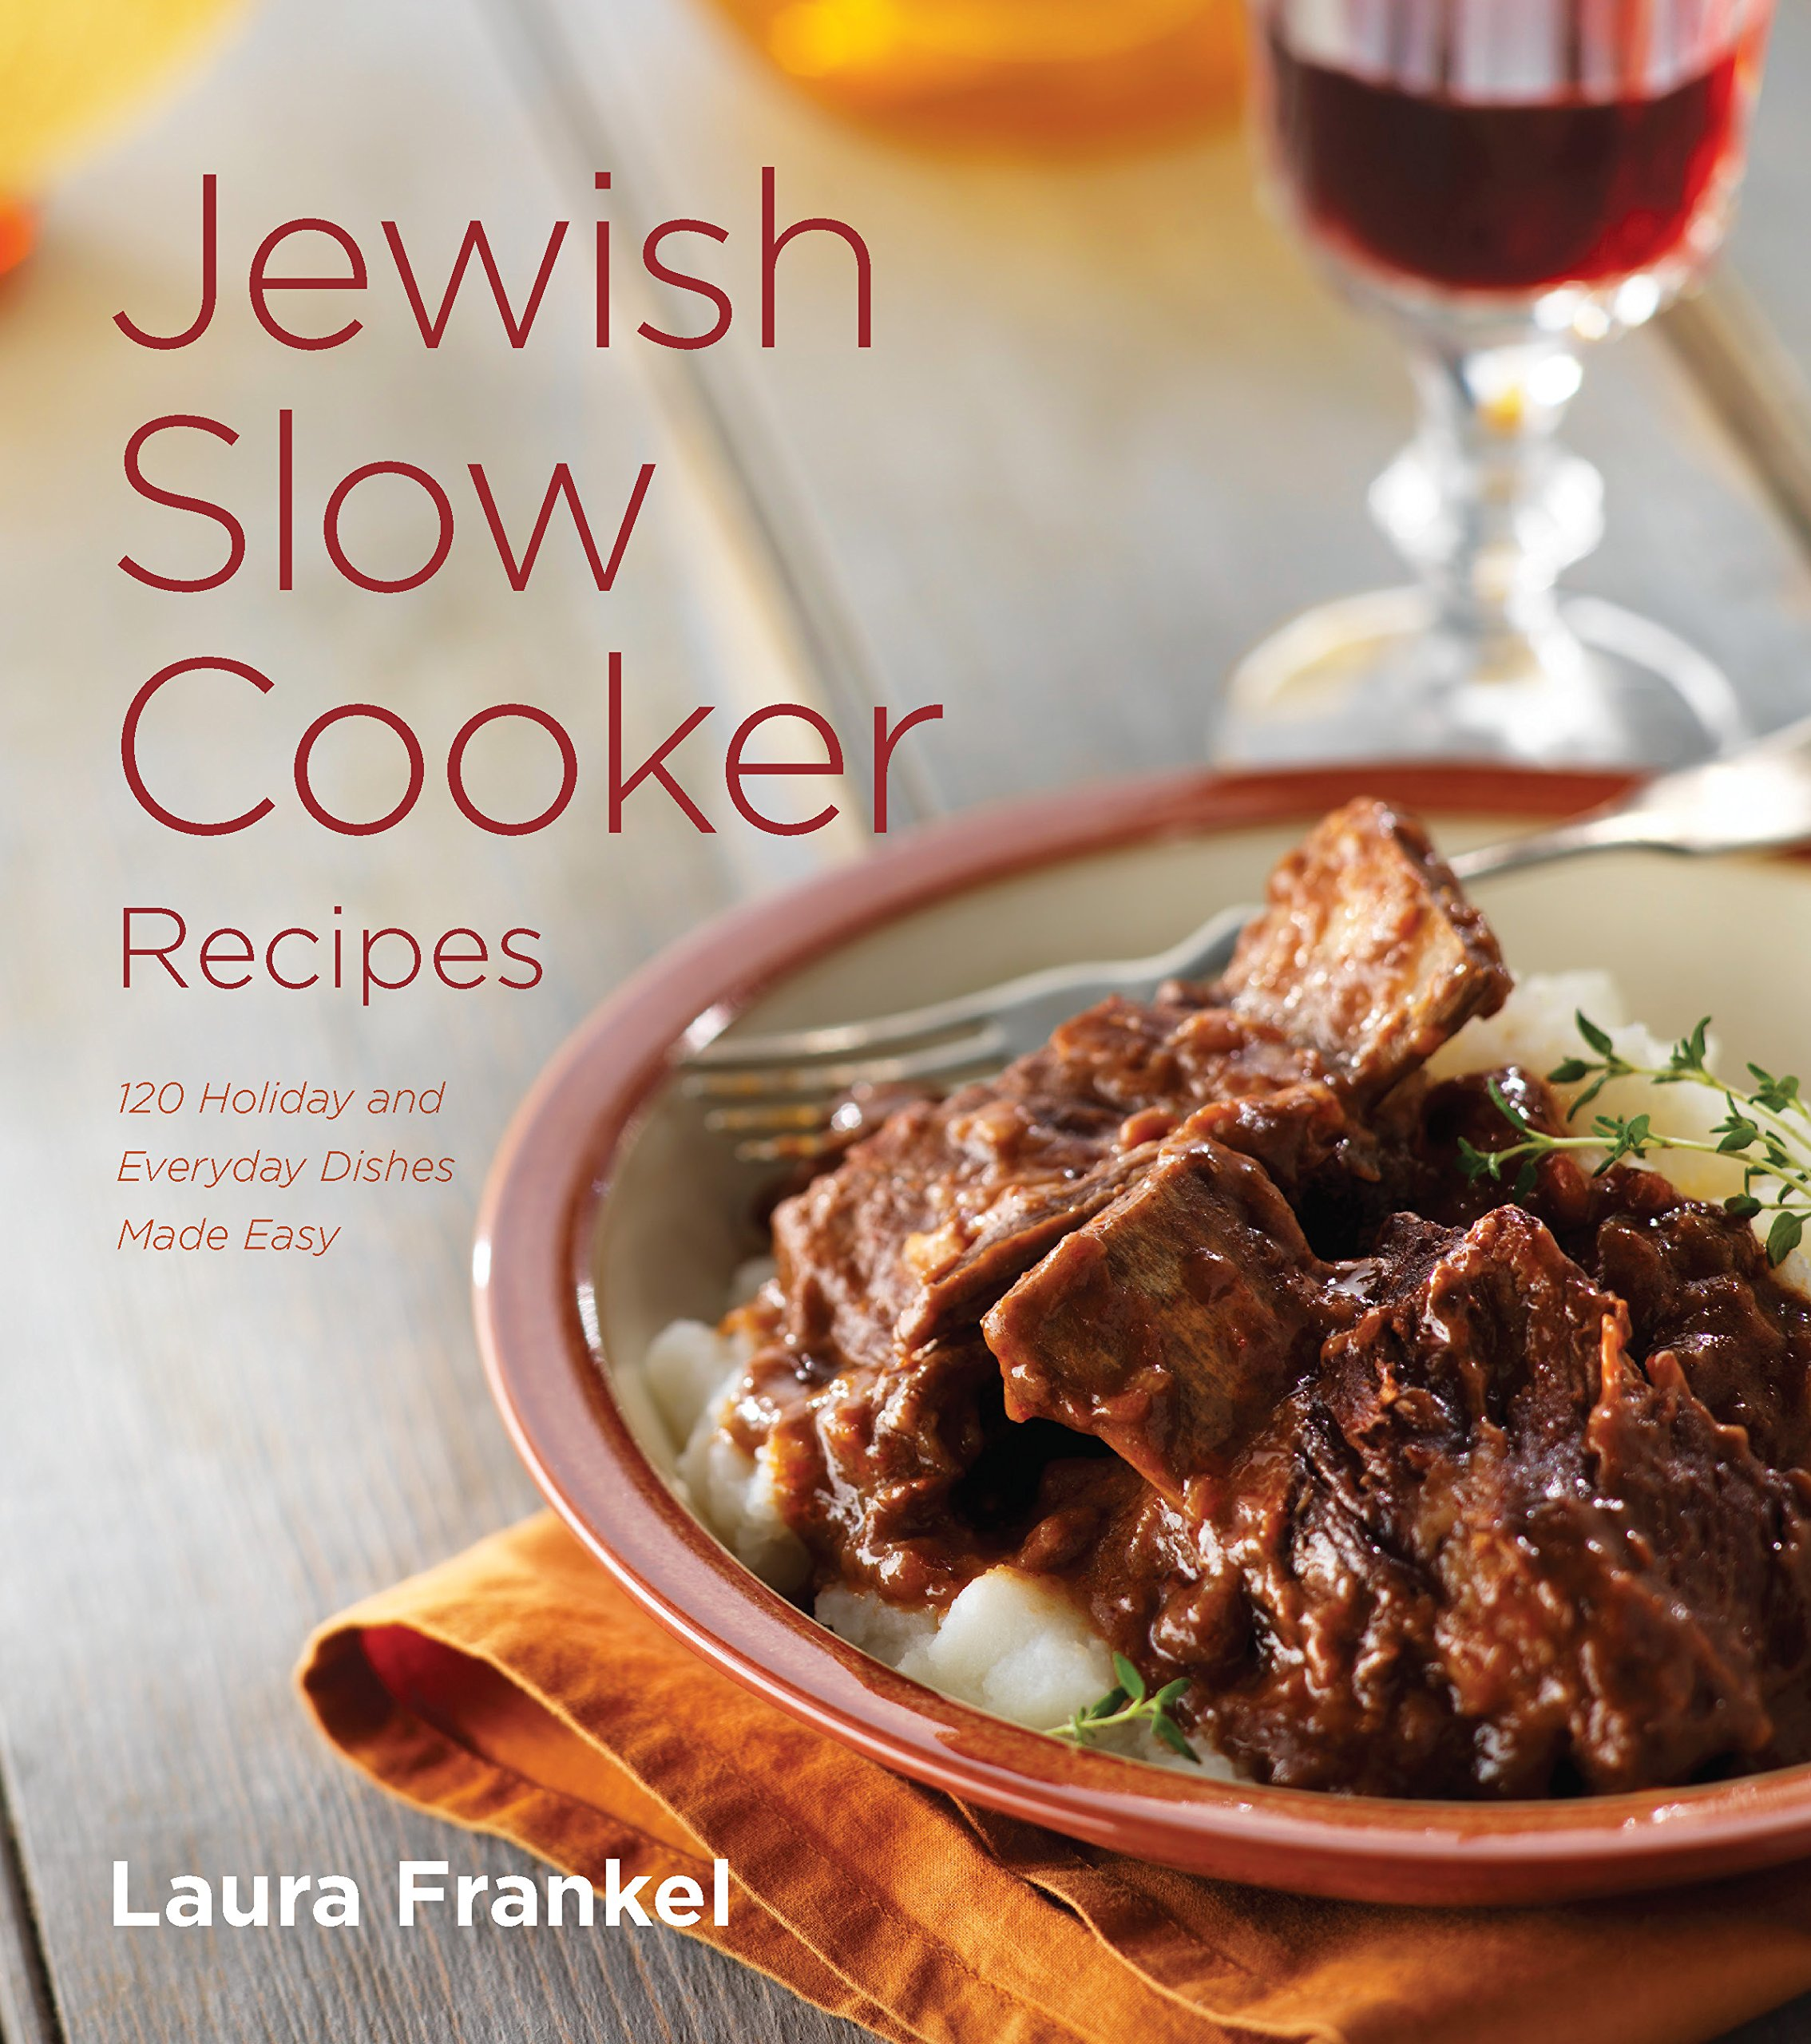 Jewish slow cooker recipes 120 holiday and everyday dishes made jewish slow cooker recipes 120 holiday and everyday dishes made easy laura frankel 9781572841802 amazon books forumfinder Image collections